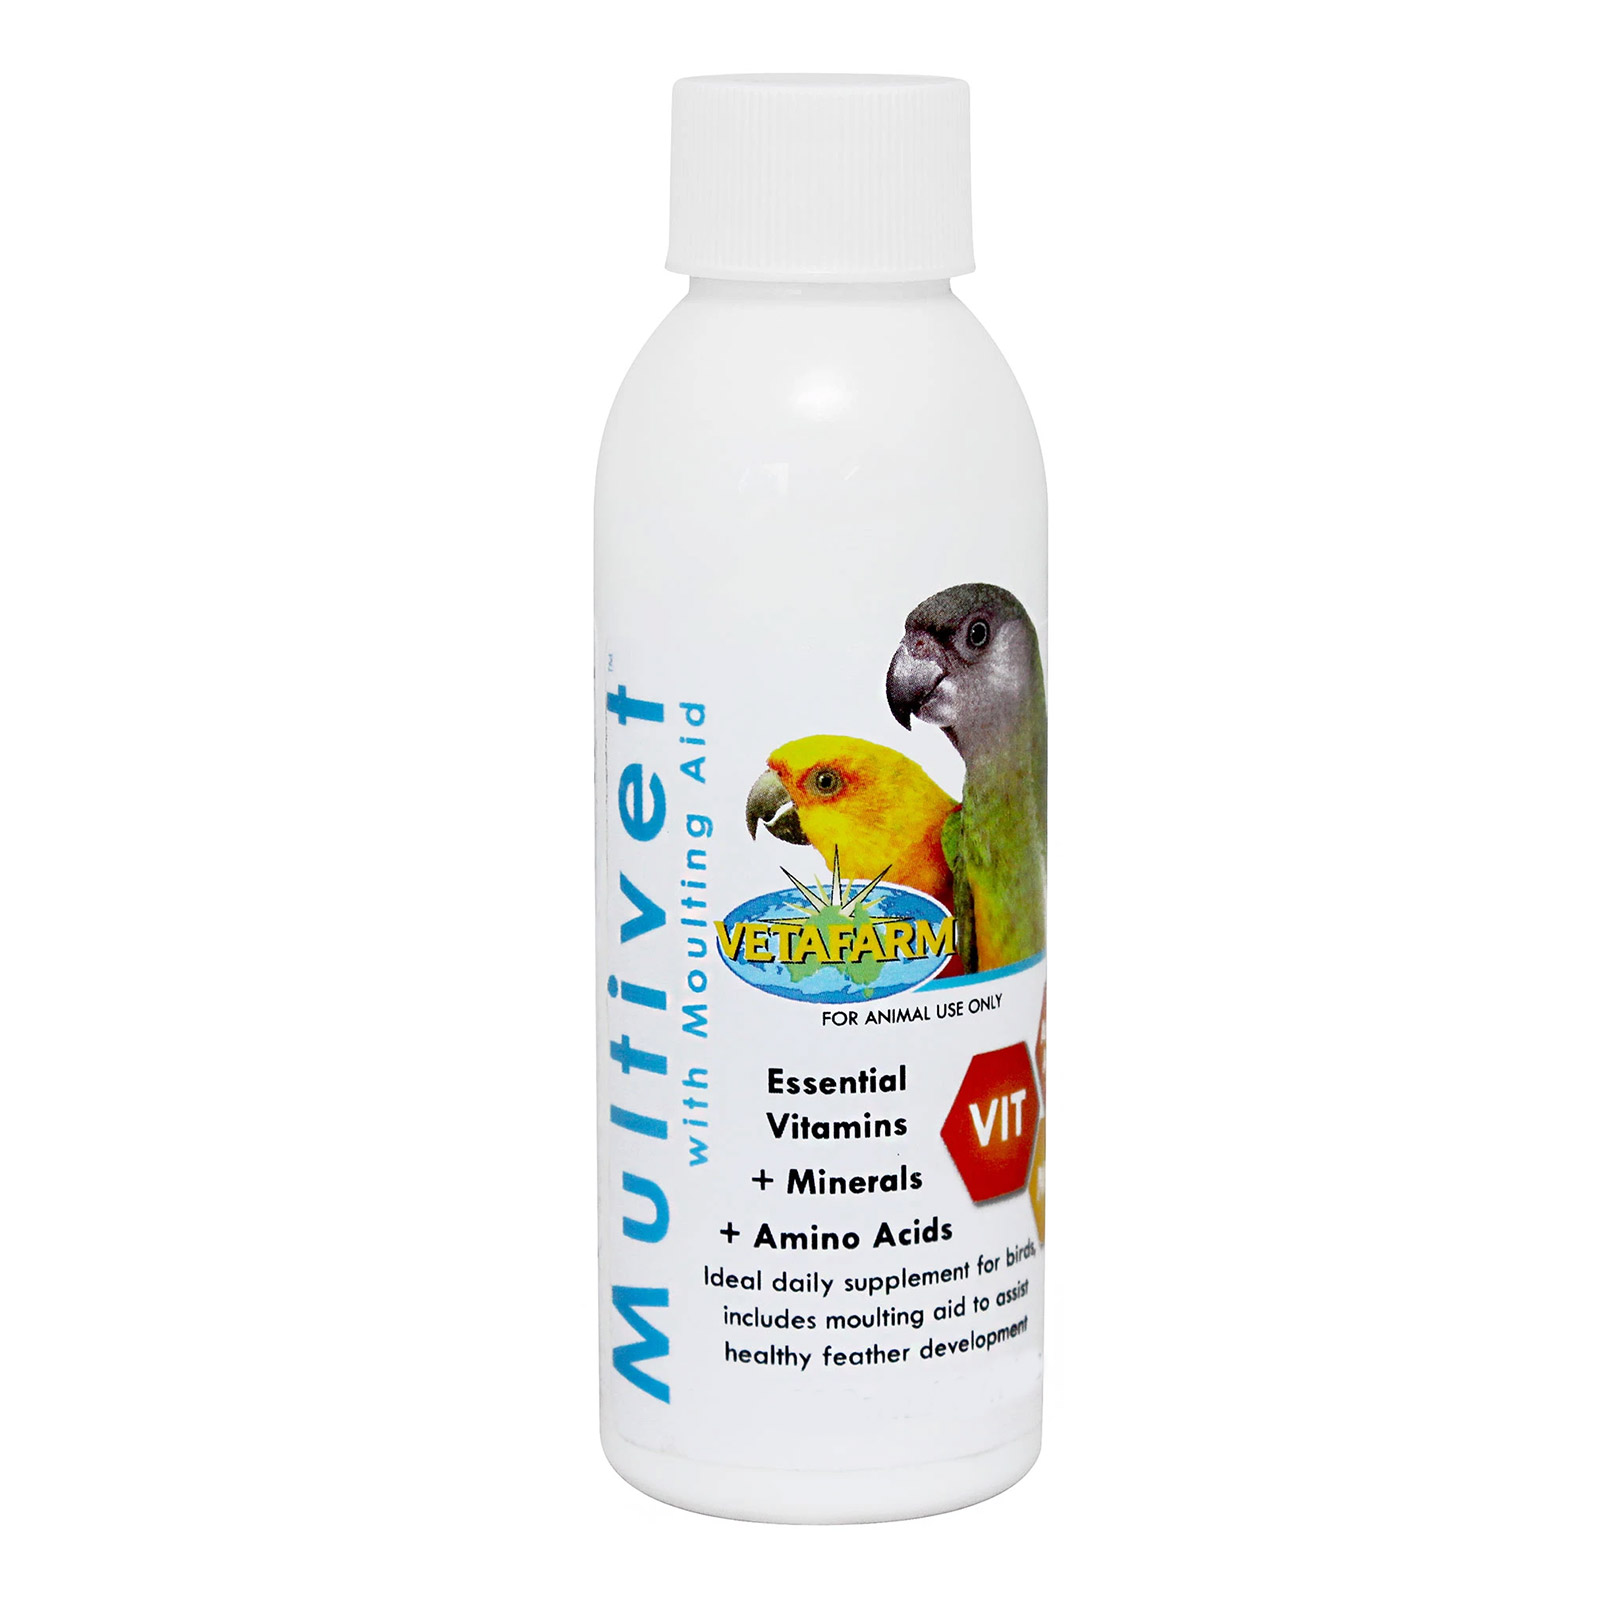 Vetafarm Multivet Liquid with Moulting Aid for Birds